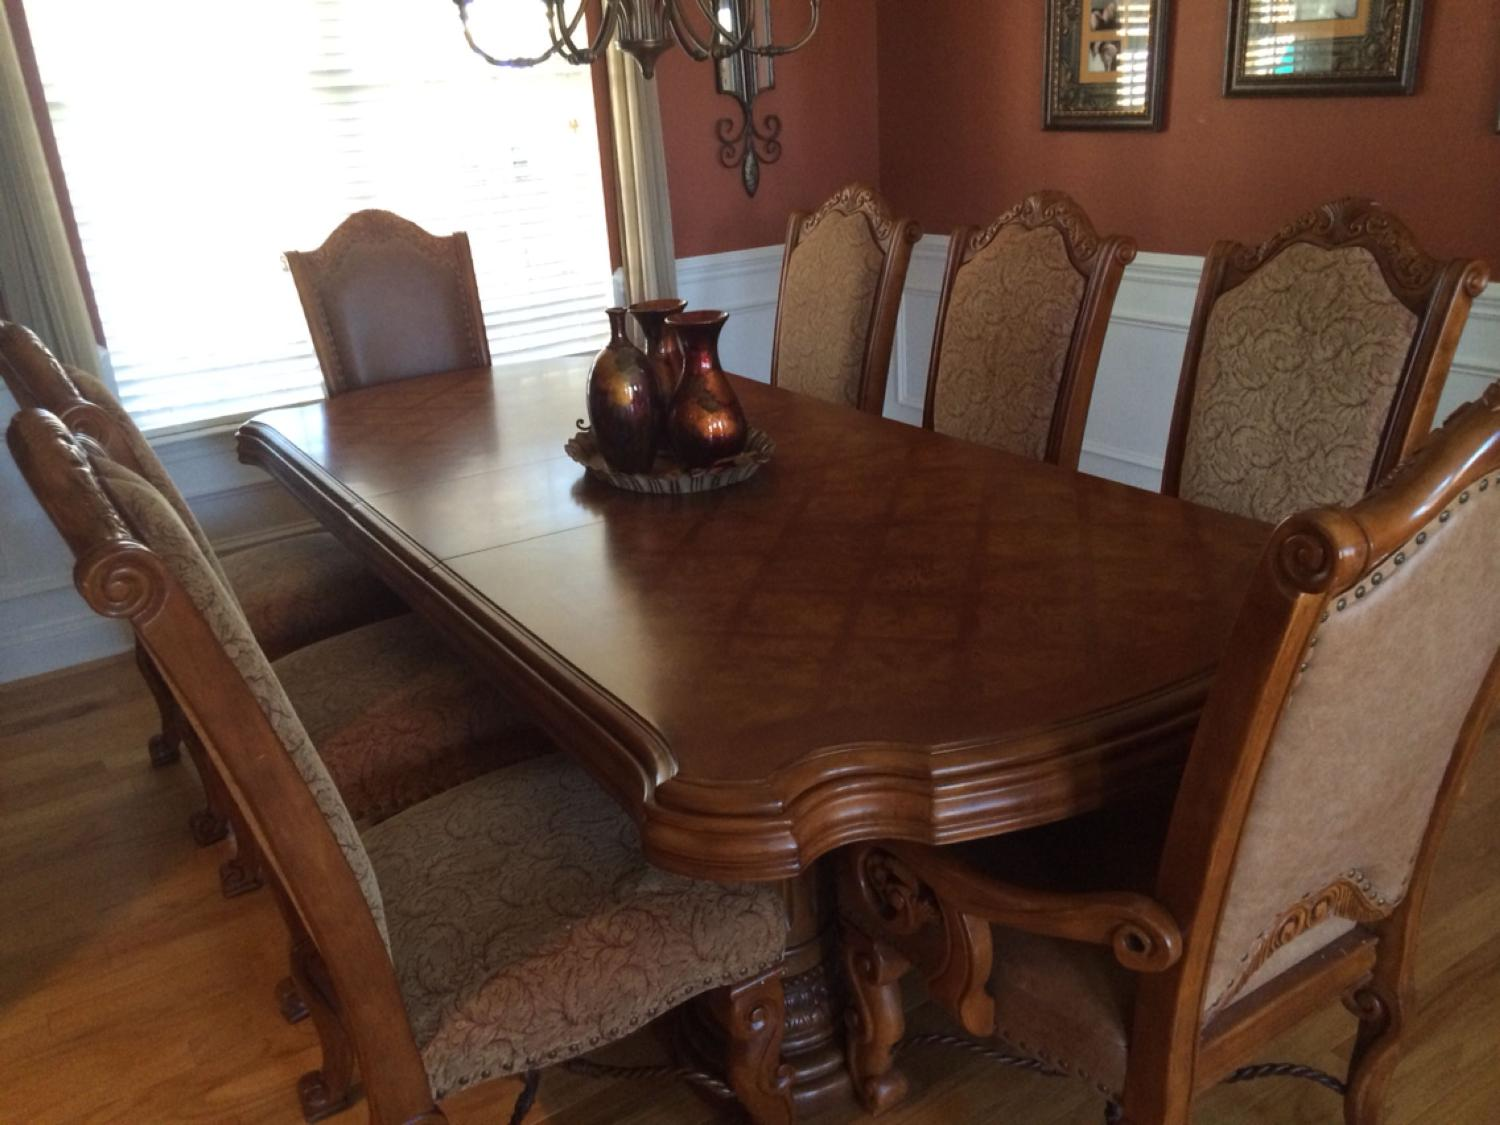 AICO Monte Carlo Dining Room Suite by Michael Amini. We paid well over  $6000 for the dining room table and 10 chairs. $950